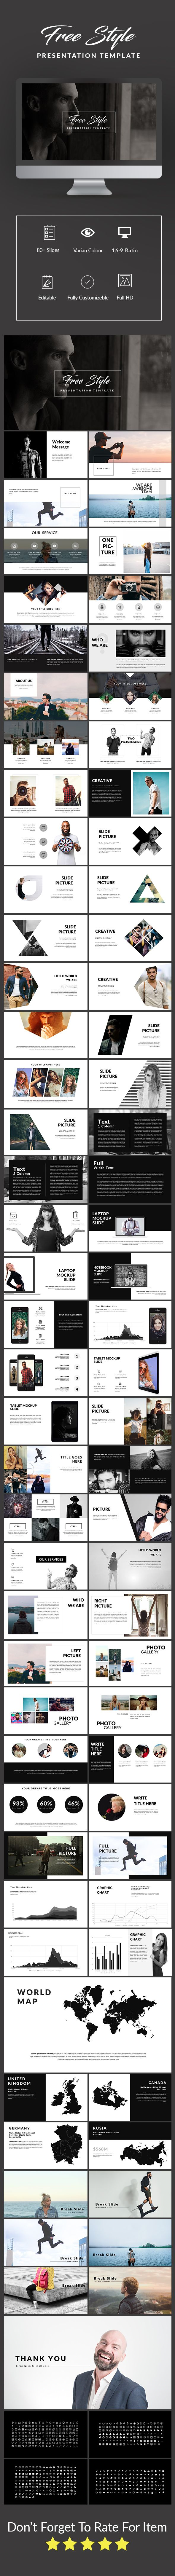 ideas about powerpoint presentations style powerpoint presentation template